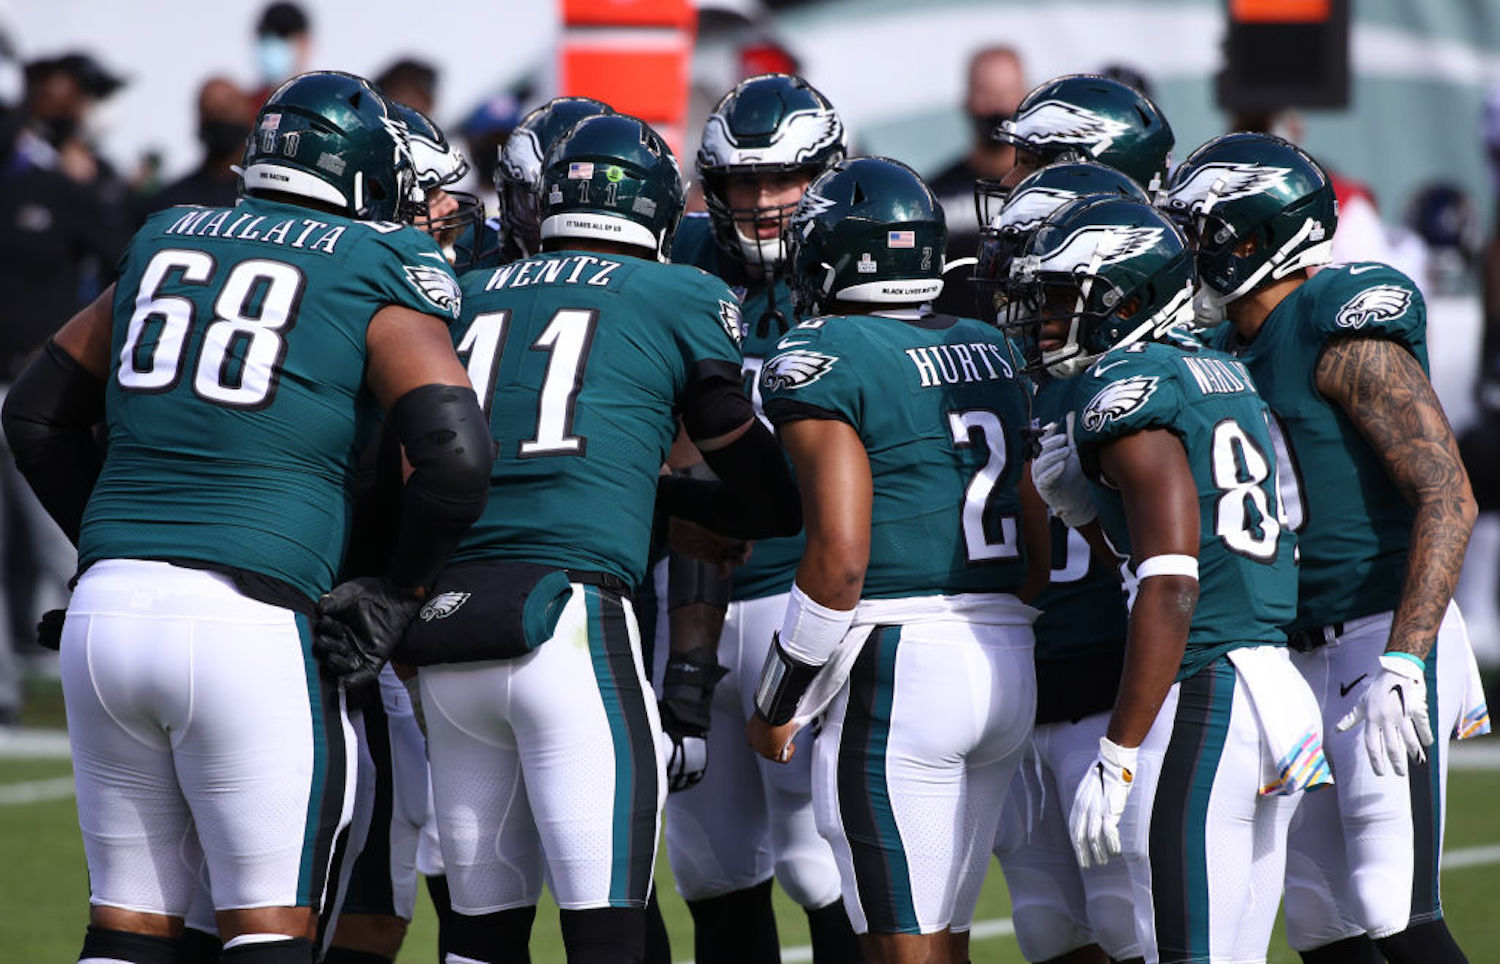 The Philadelphia Eagles have been crushed by injuries in 2020, but they just got two crucial pieces to their offense back on Monday.